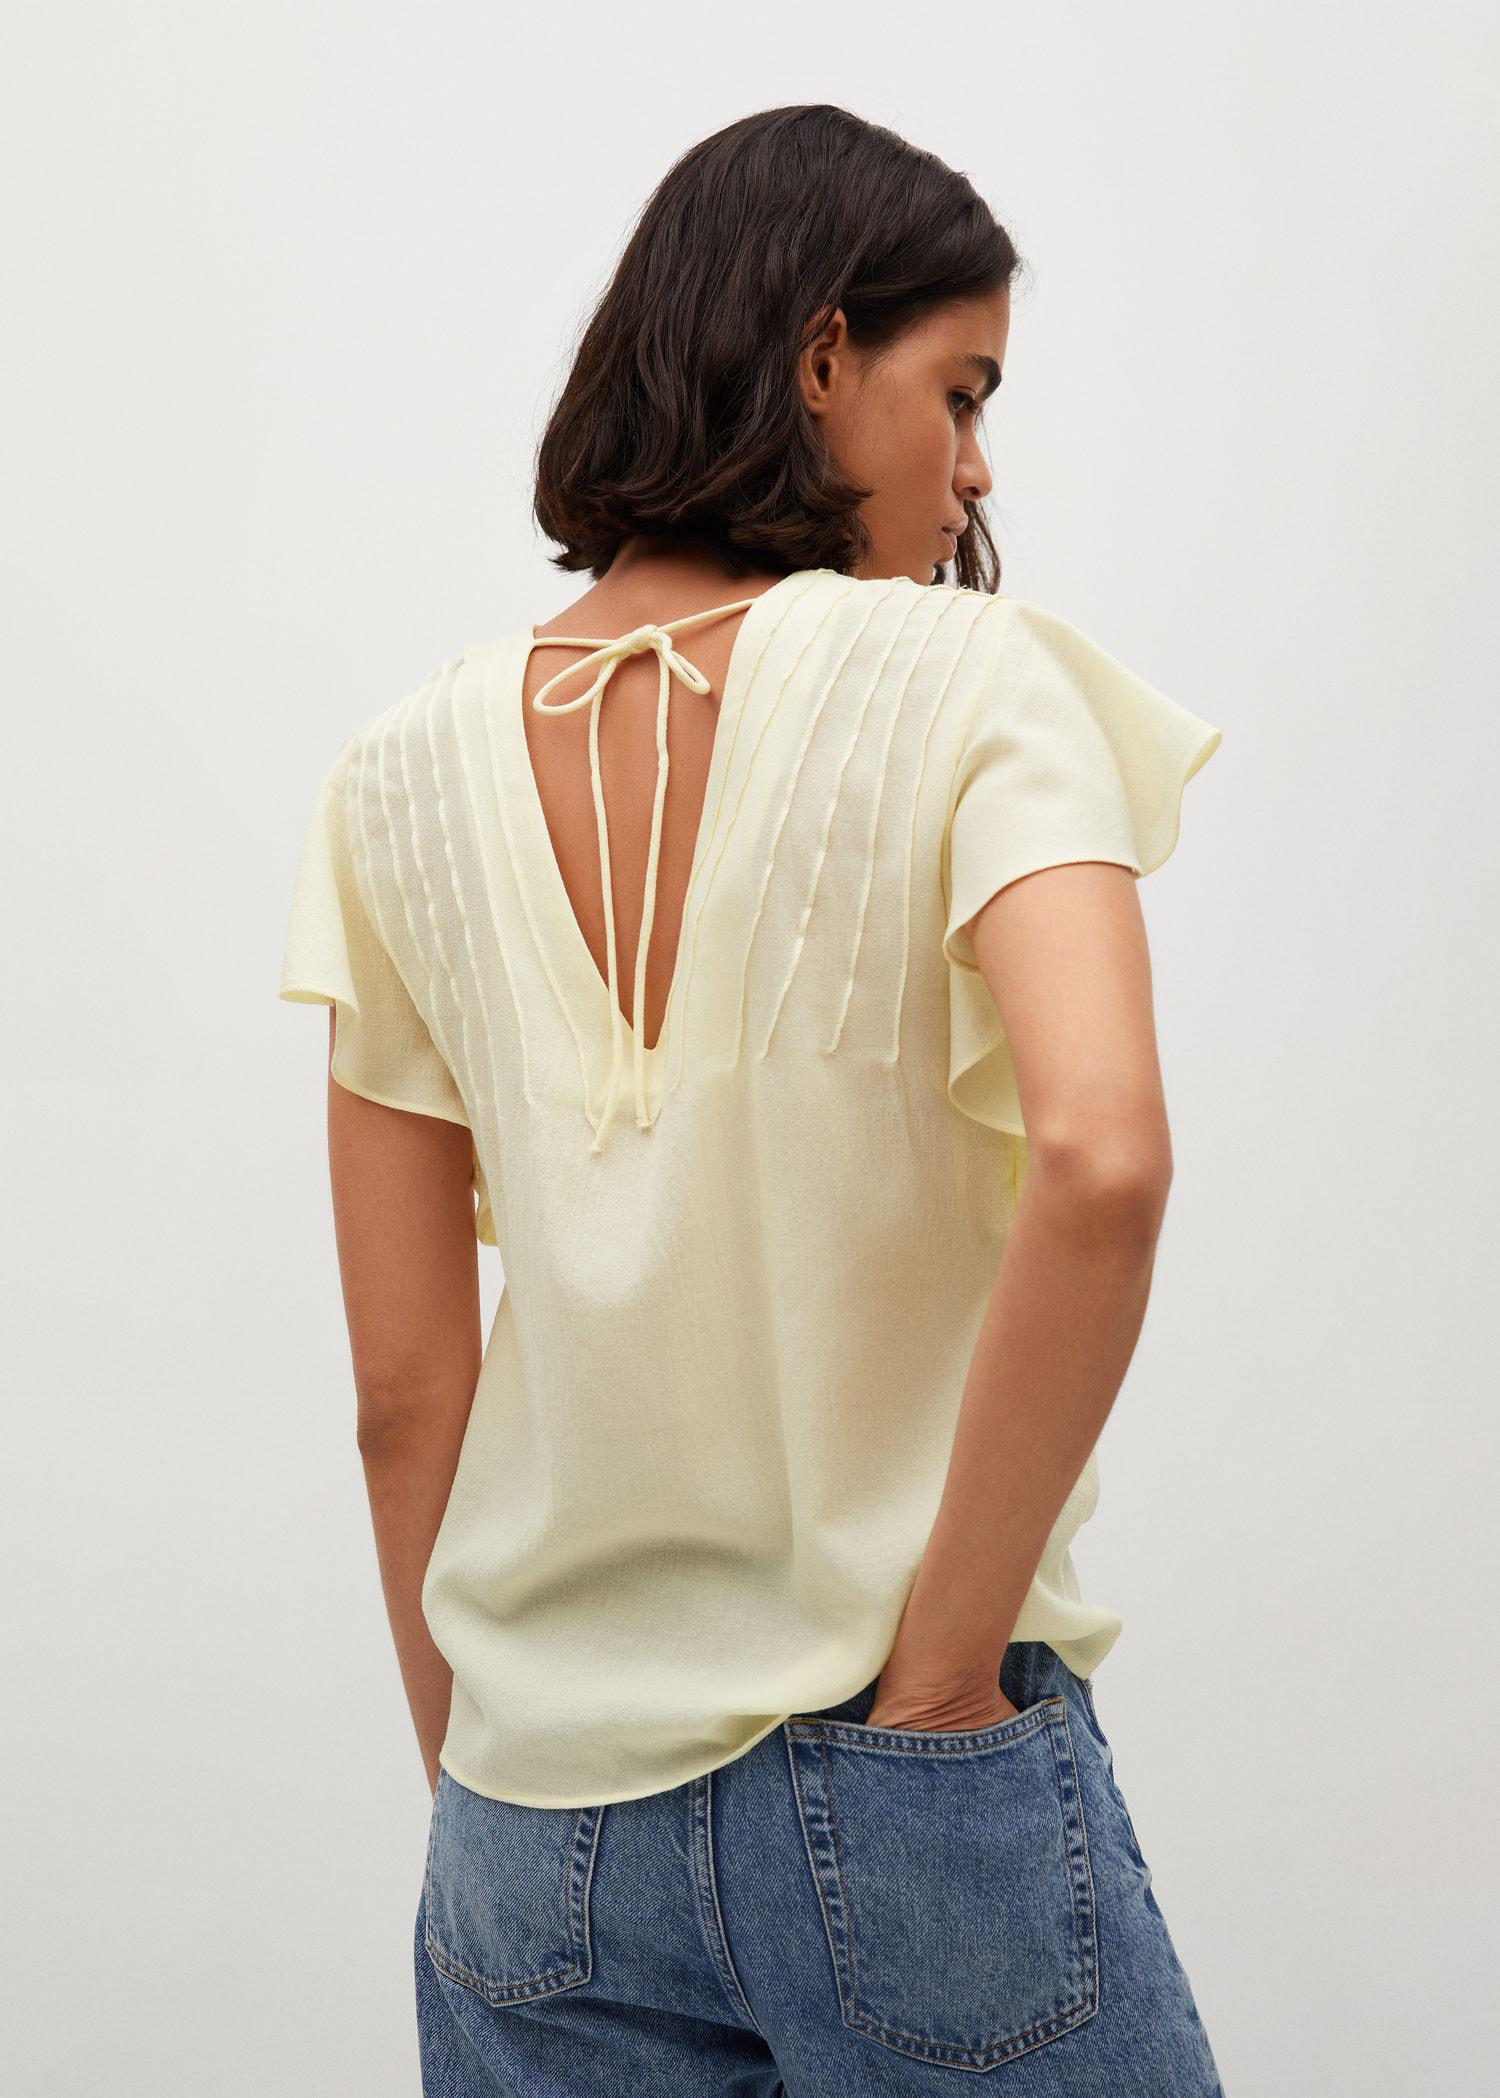 Bow textured blouse 2